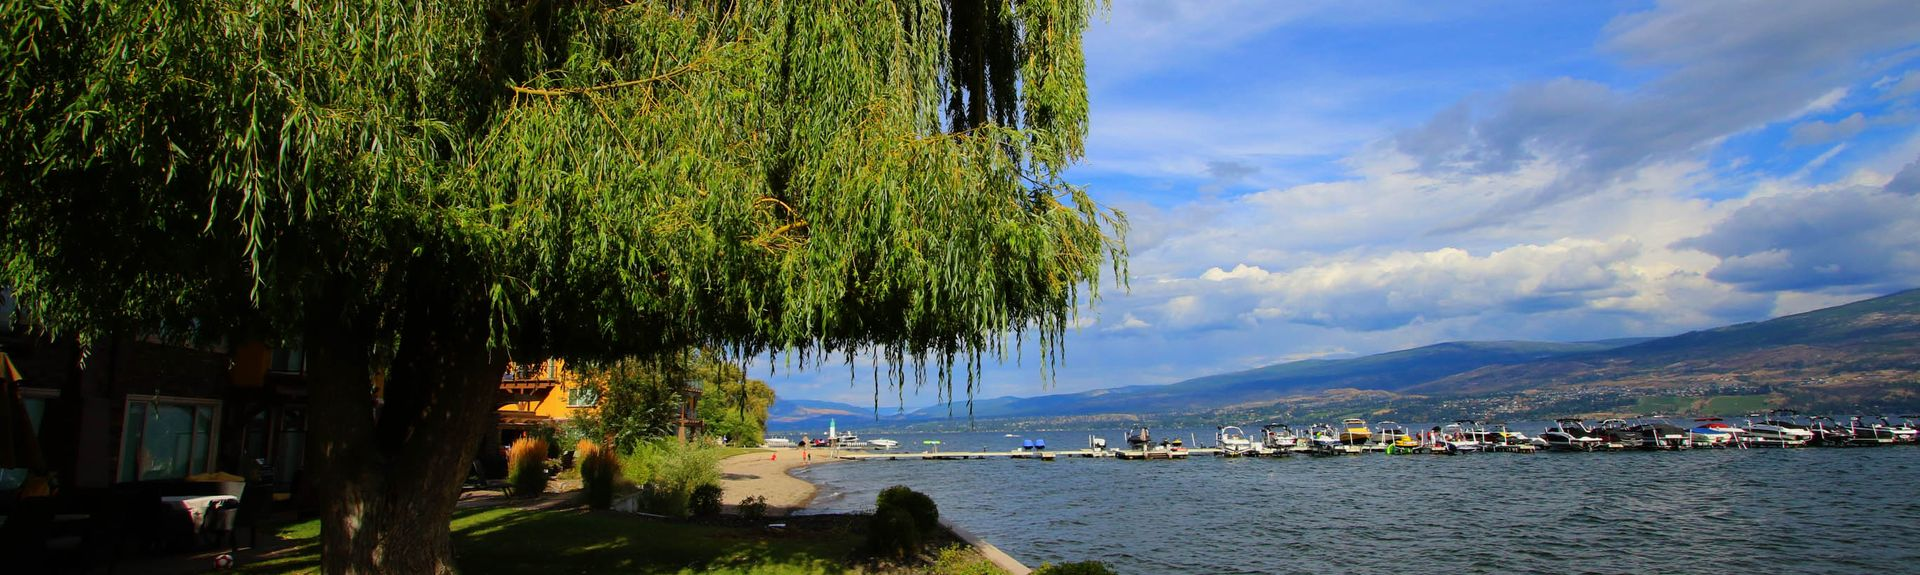 Barona Beach Lakefront Resort, West Kelowna, British Columbia, Canada